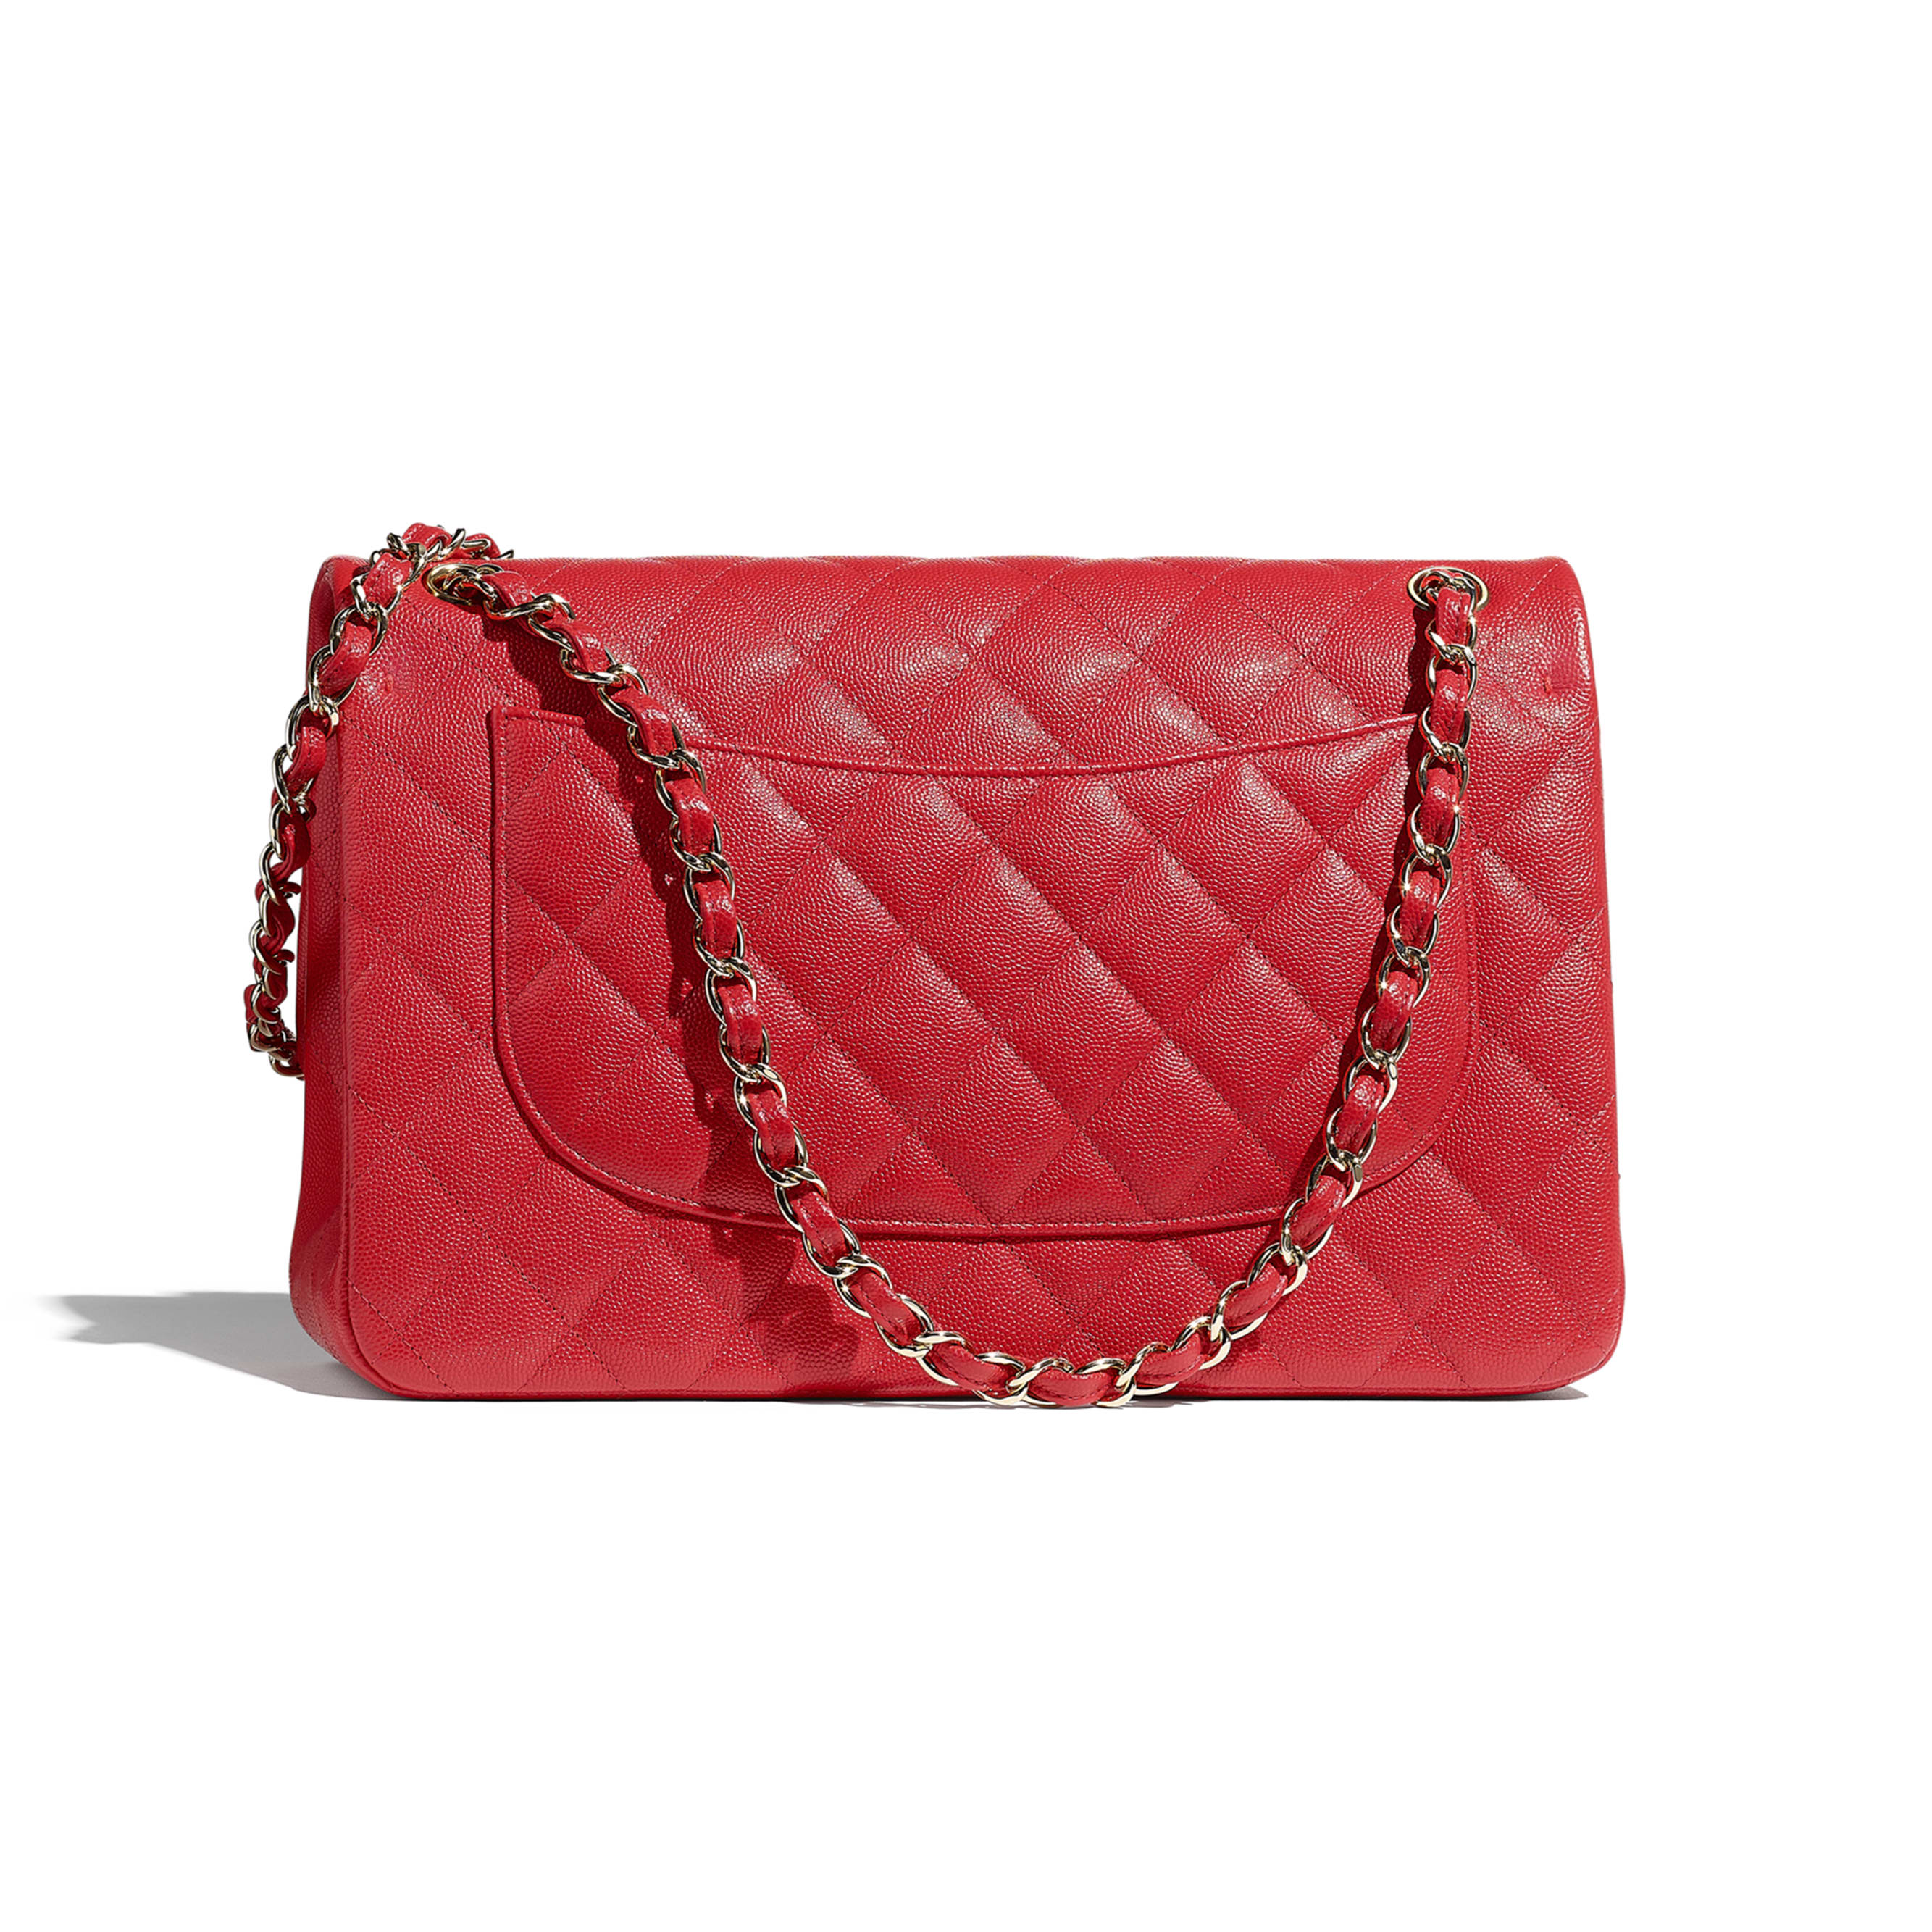 Large Classic Handbag - Red - Grained Calfskin & Gold-Tone Metal - CHANEL - Alternative view - see standard sized version